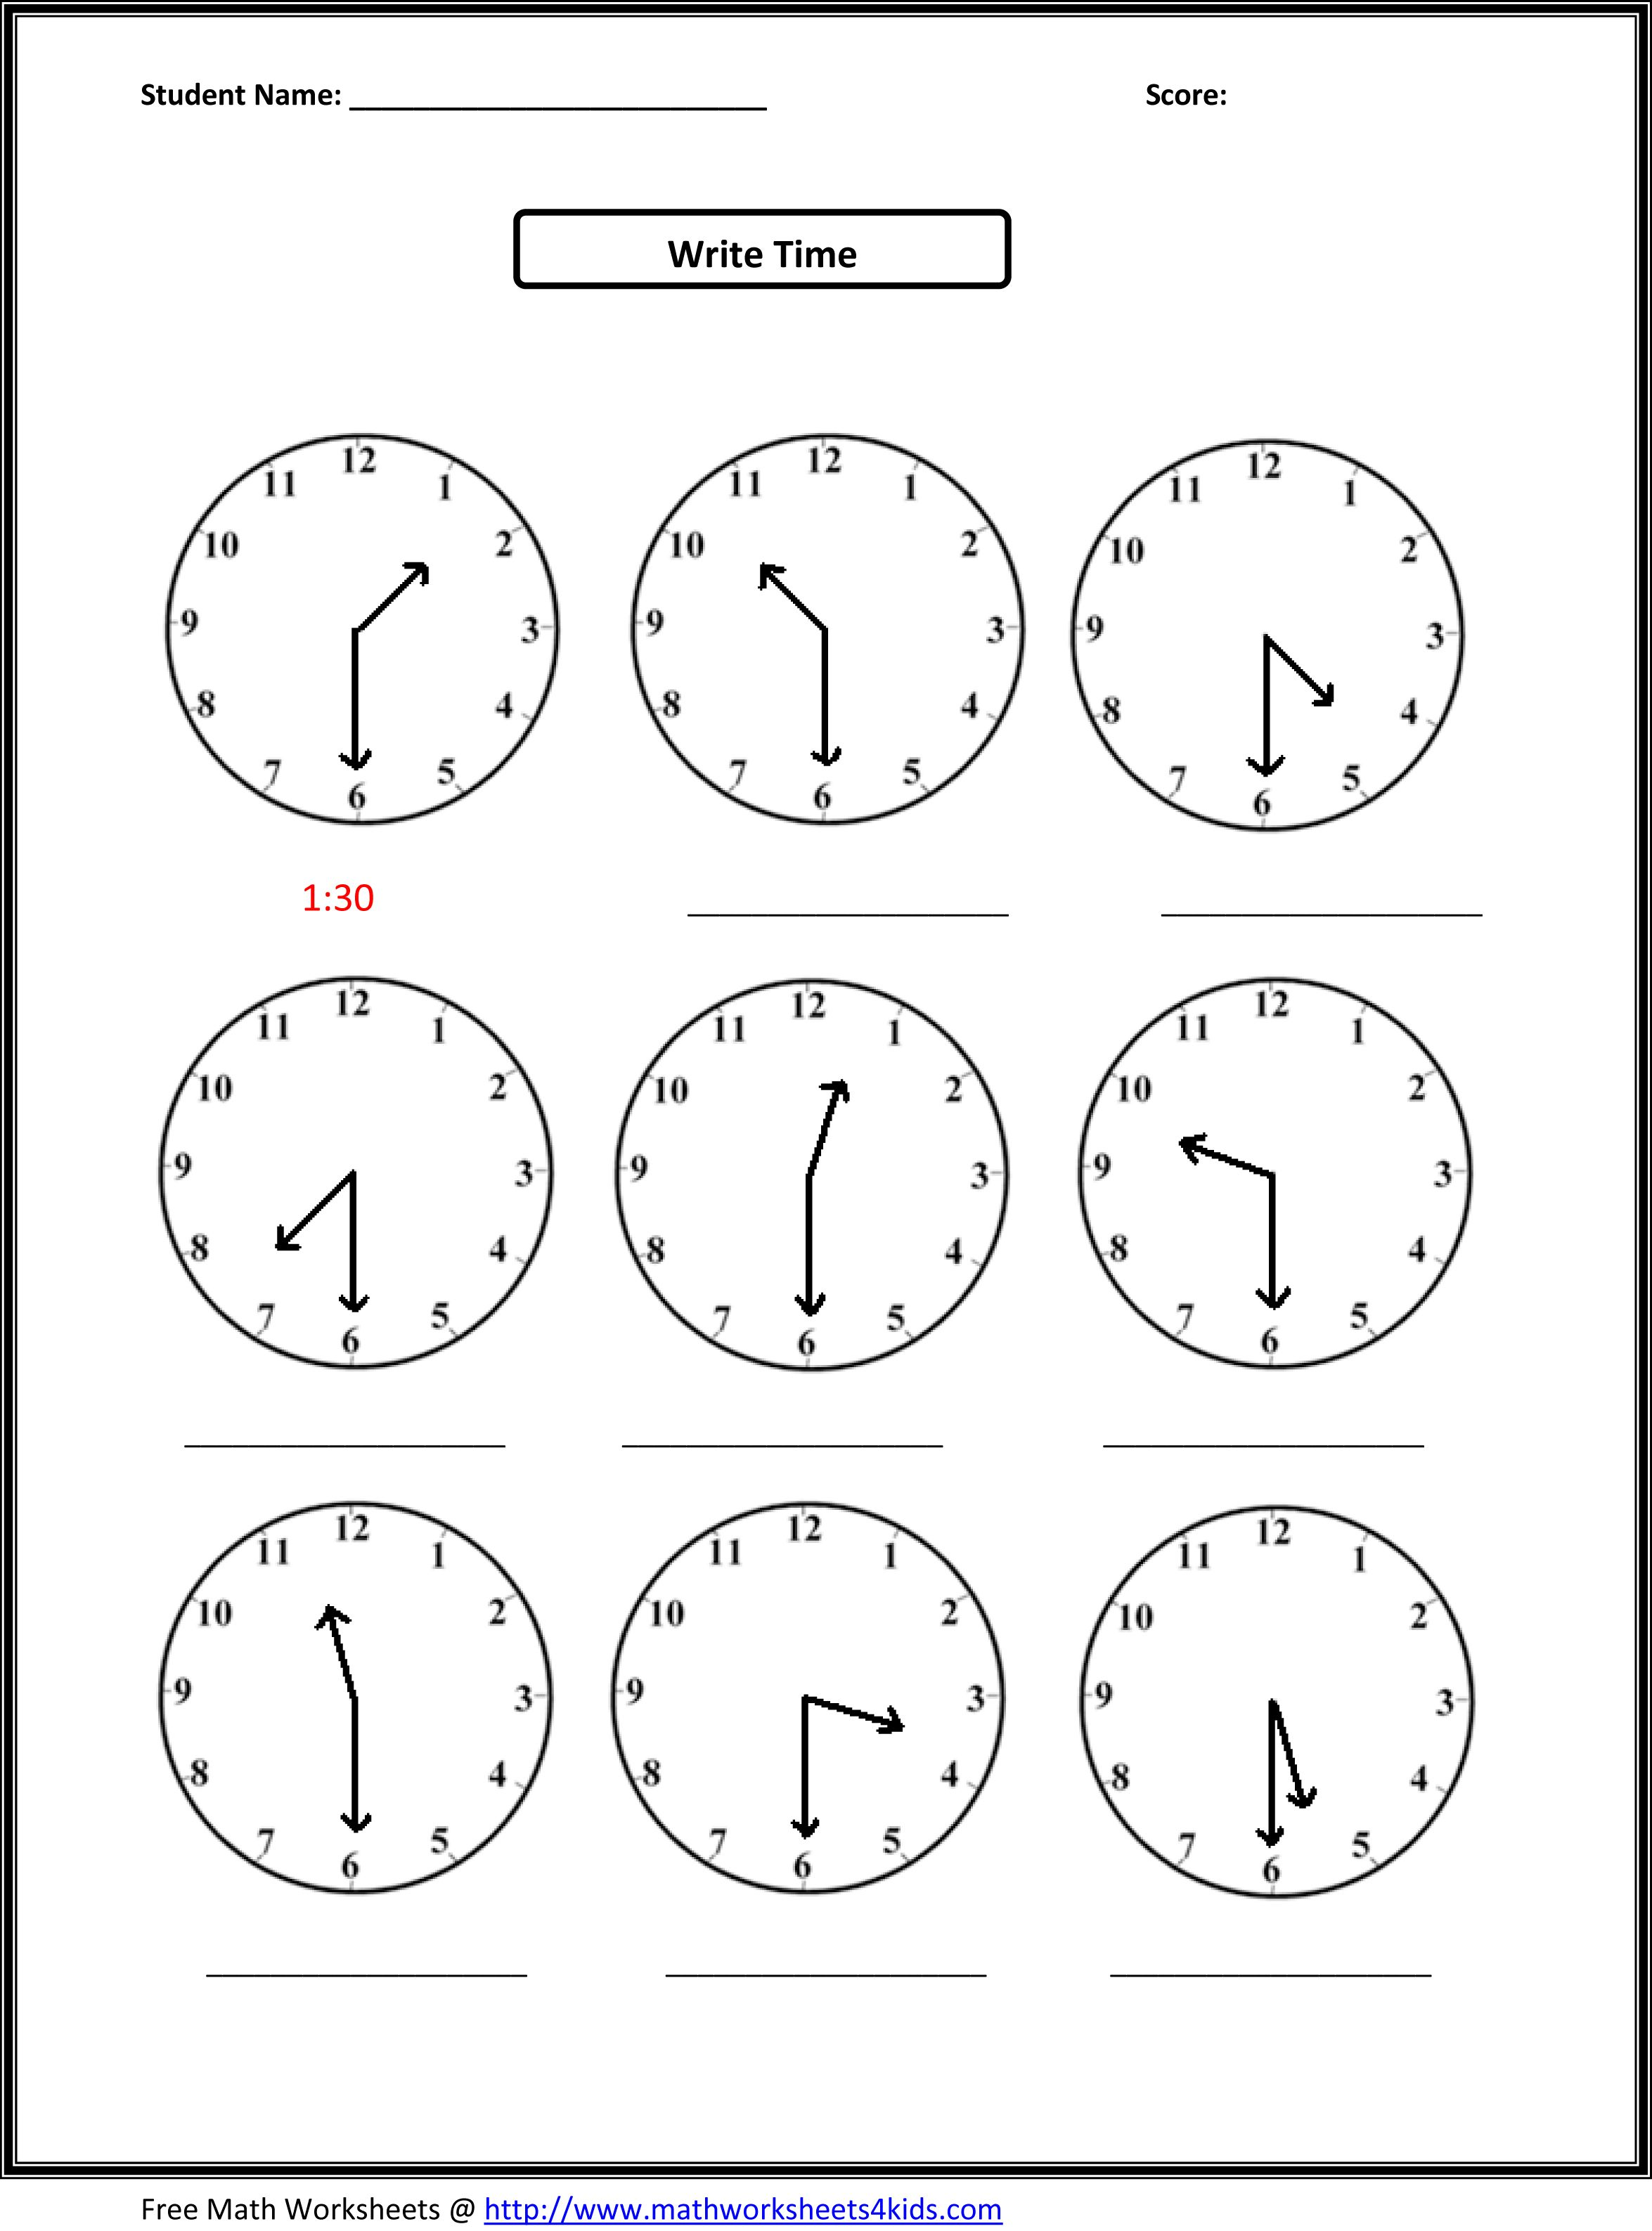 Weirdmailus  Stunning Worksheet On Time For Grade   Reocurent With Likable Free Printable Telling Time Worksheets Nd Grade  Reocurent With Breathtaking Free Printable Worksheets For Ks Also Indian Money Worksheets In Addition Angle Geometry Worksheet And Dot To Dot Printable Worksheets As Well As Silent Letters Worksheet Additionally Worksheets For Therapy From Reocurentcom With Weirdmailus  Likable Worksheet On Time For Grade   Reocurent With Breathtaking Free Printable Telling Time Worksheets Nd Grade  Reocurent And Stunning Free Printable Worksheets For Ks Also Indian Money Worksheets In Addition Angle Geometry Worksheet From Reocurentcom